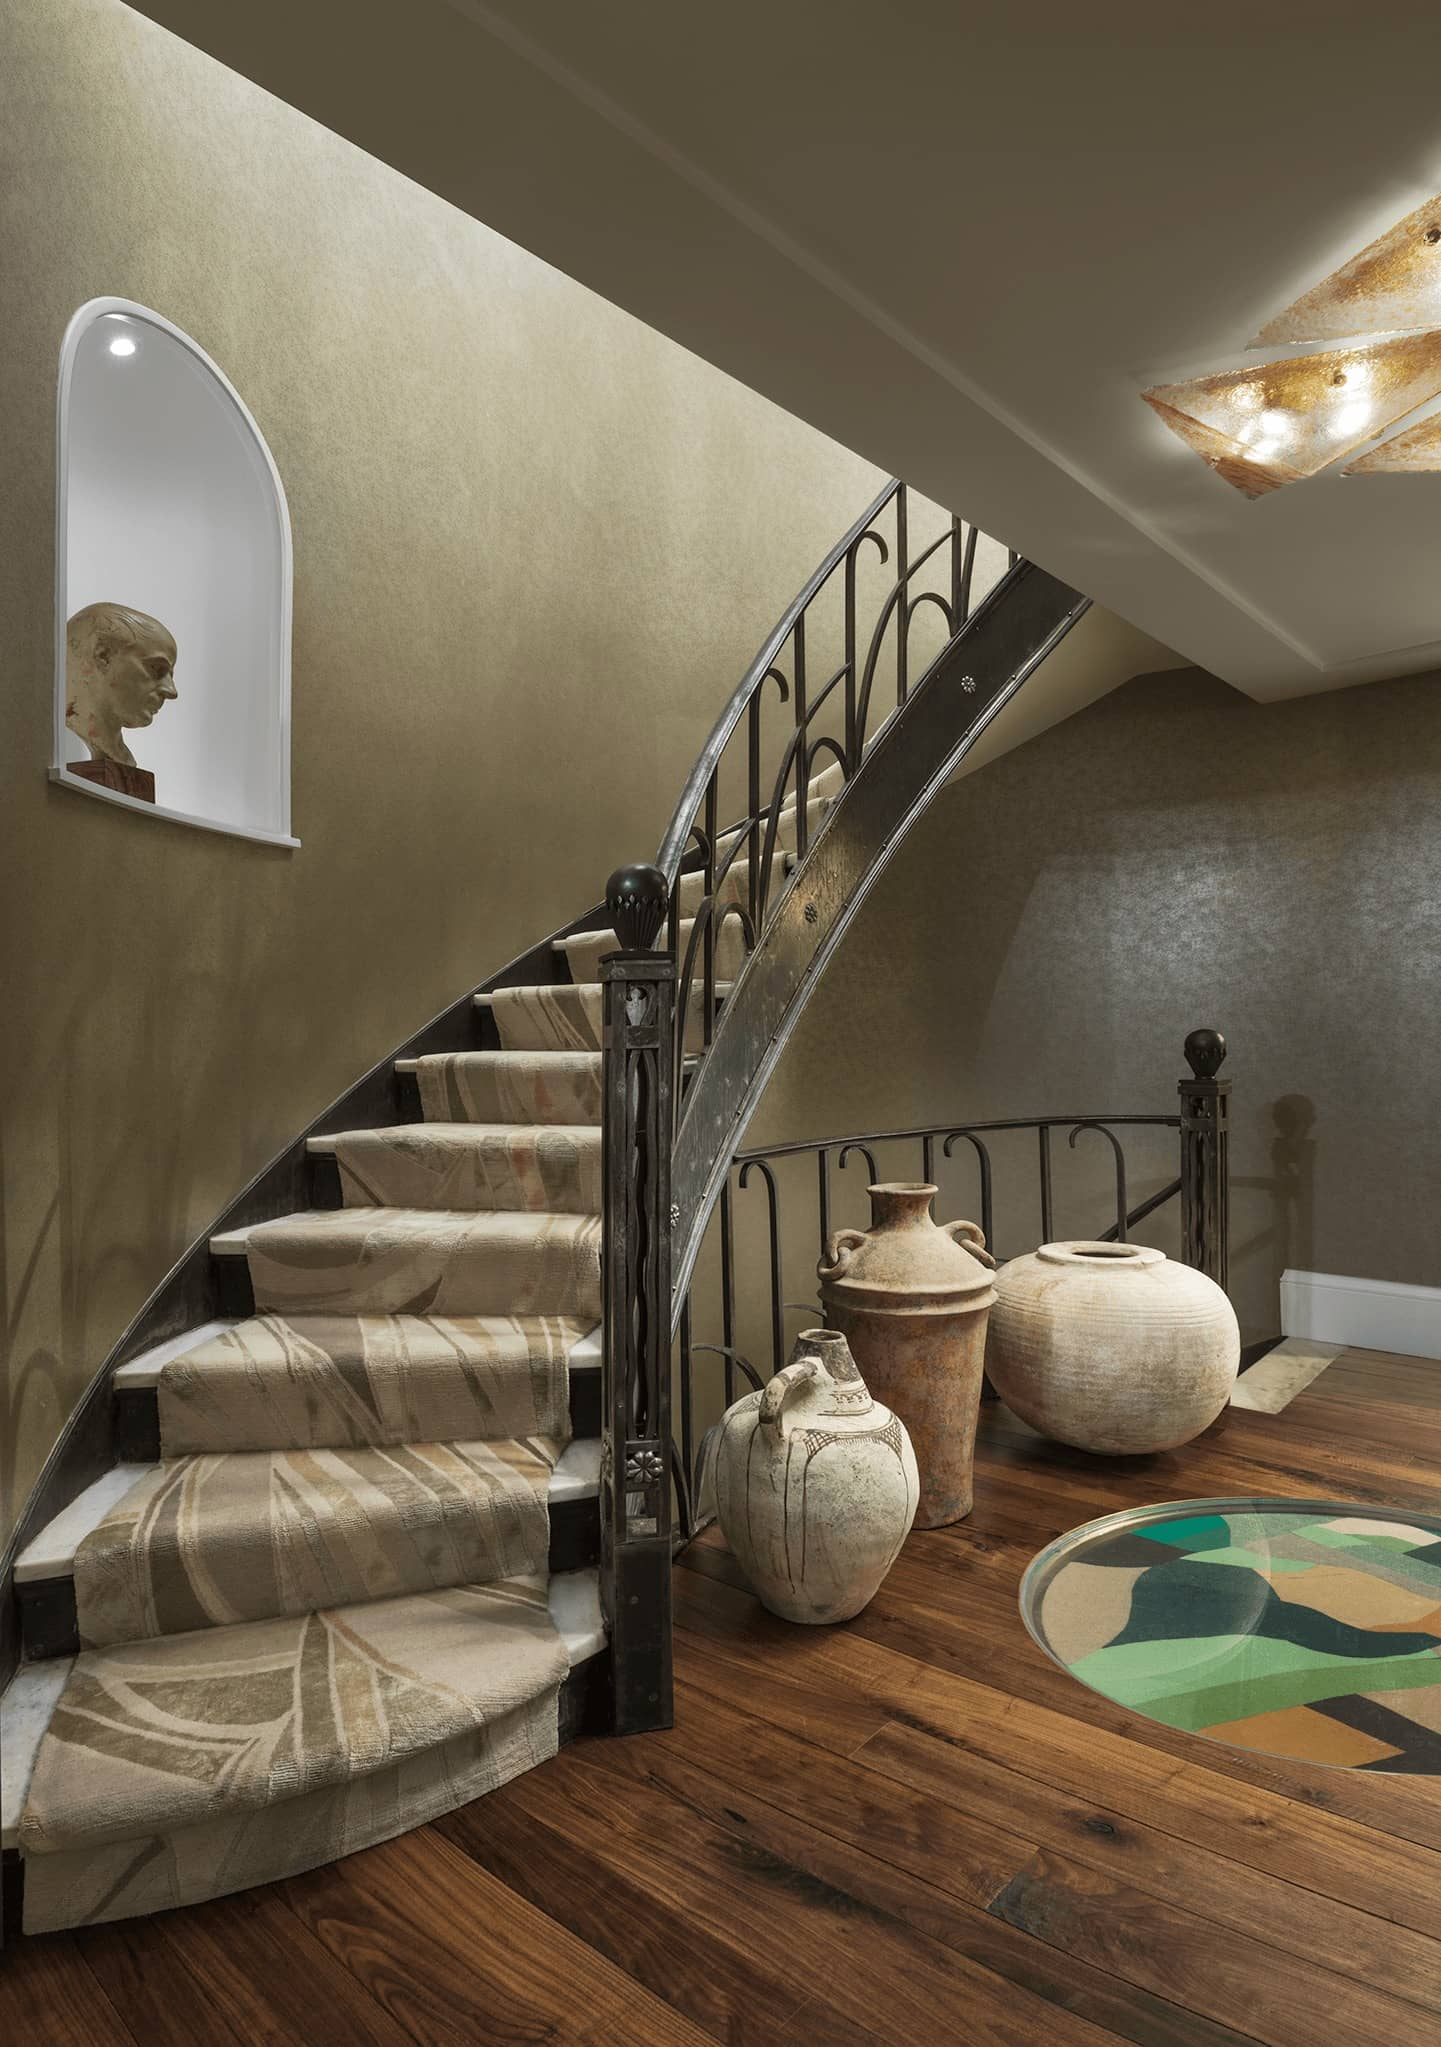 Staircase at 7 Park Avenue, decorated with several antique vases.